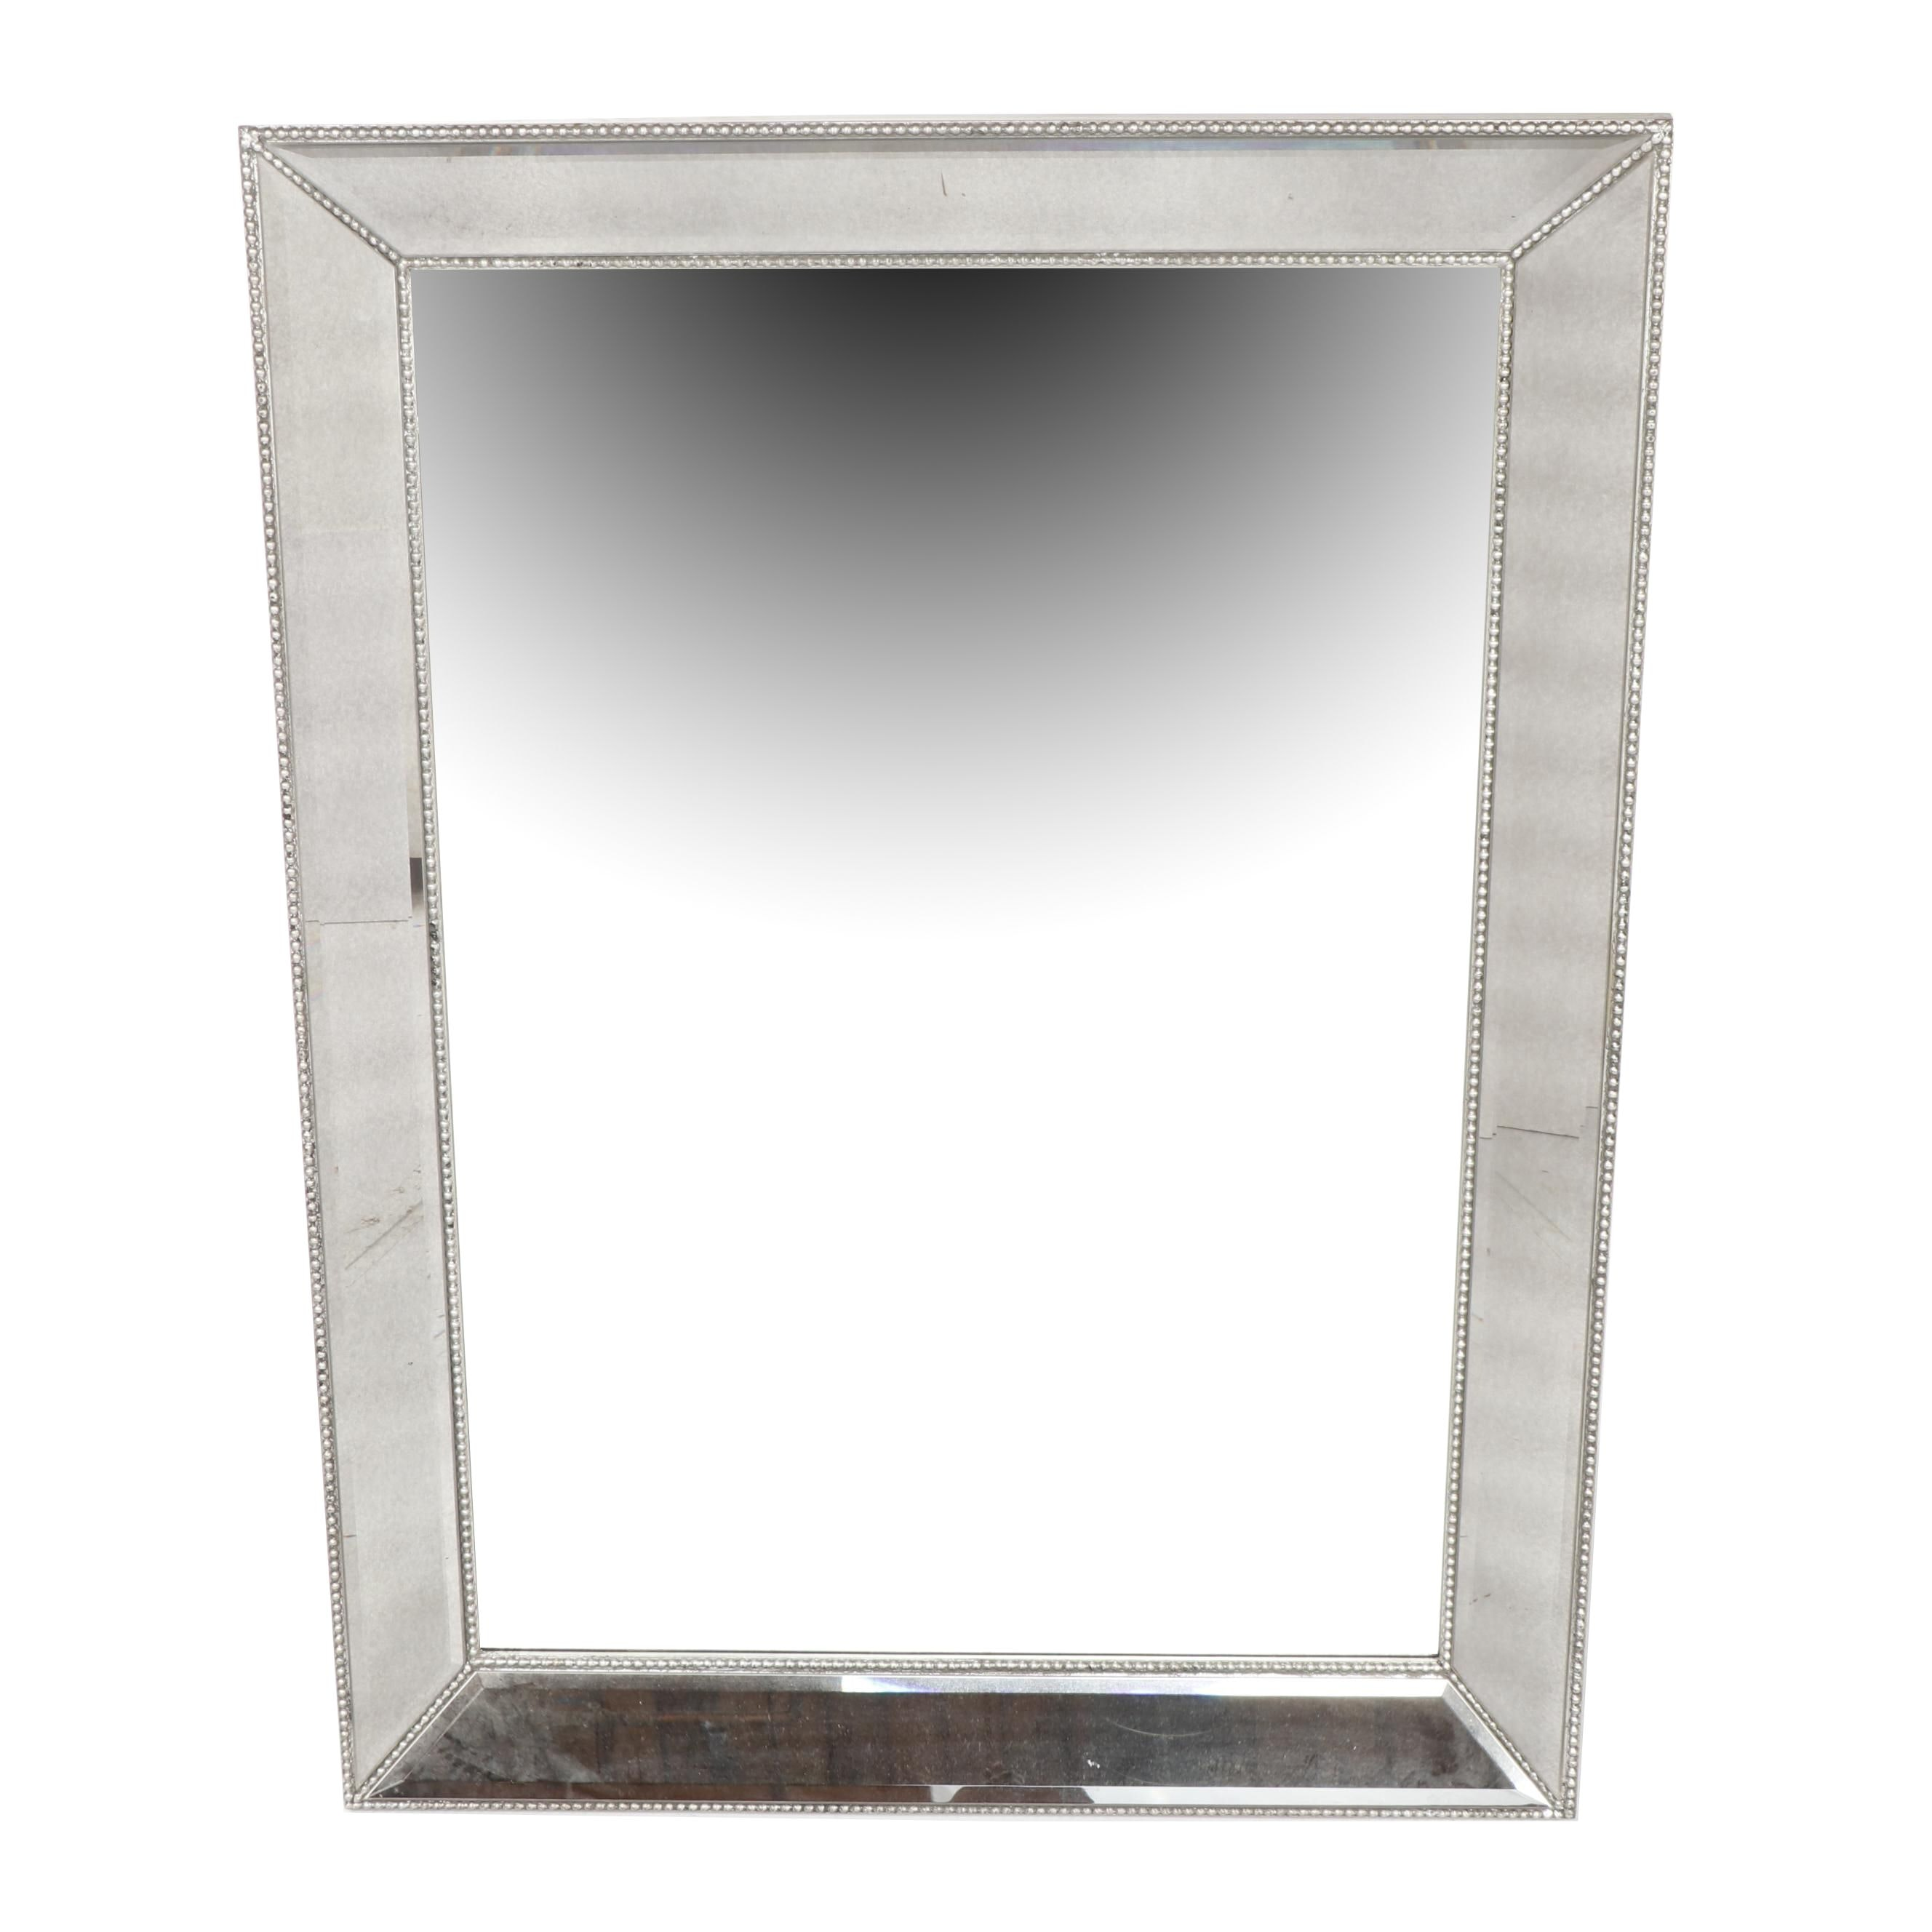 Contemporary Glass Framed Wall Mirror by Bassett Mirror Company